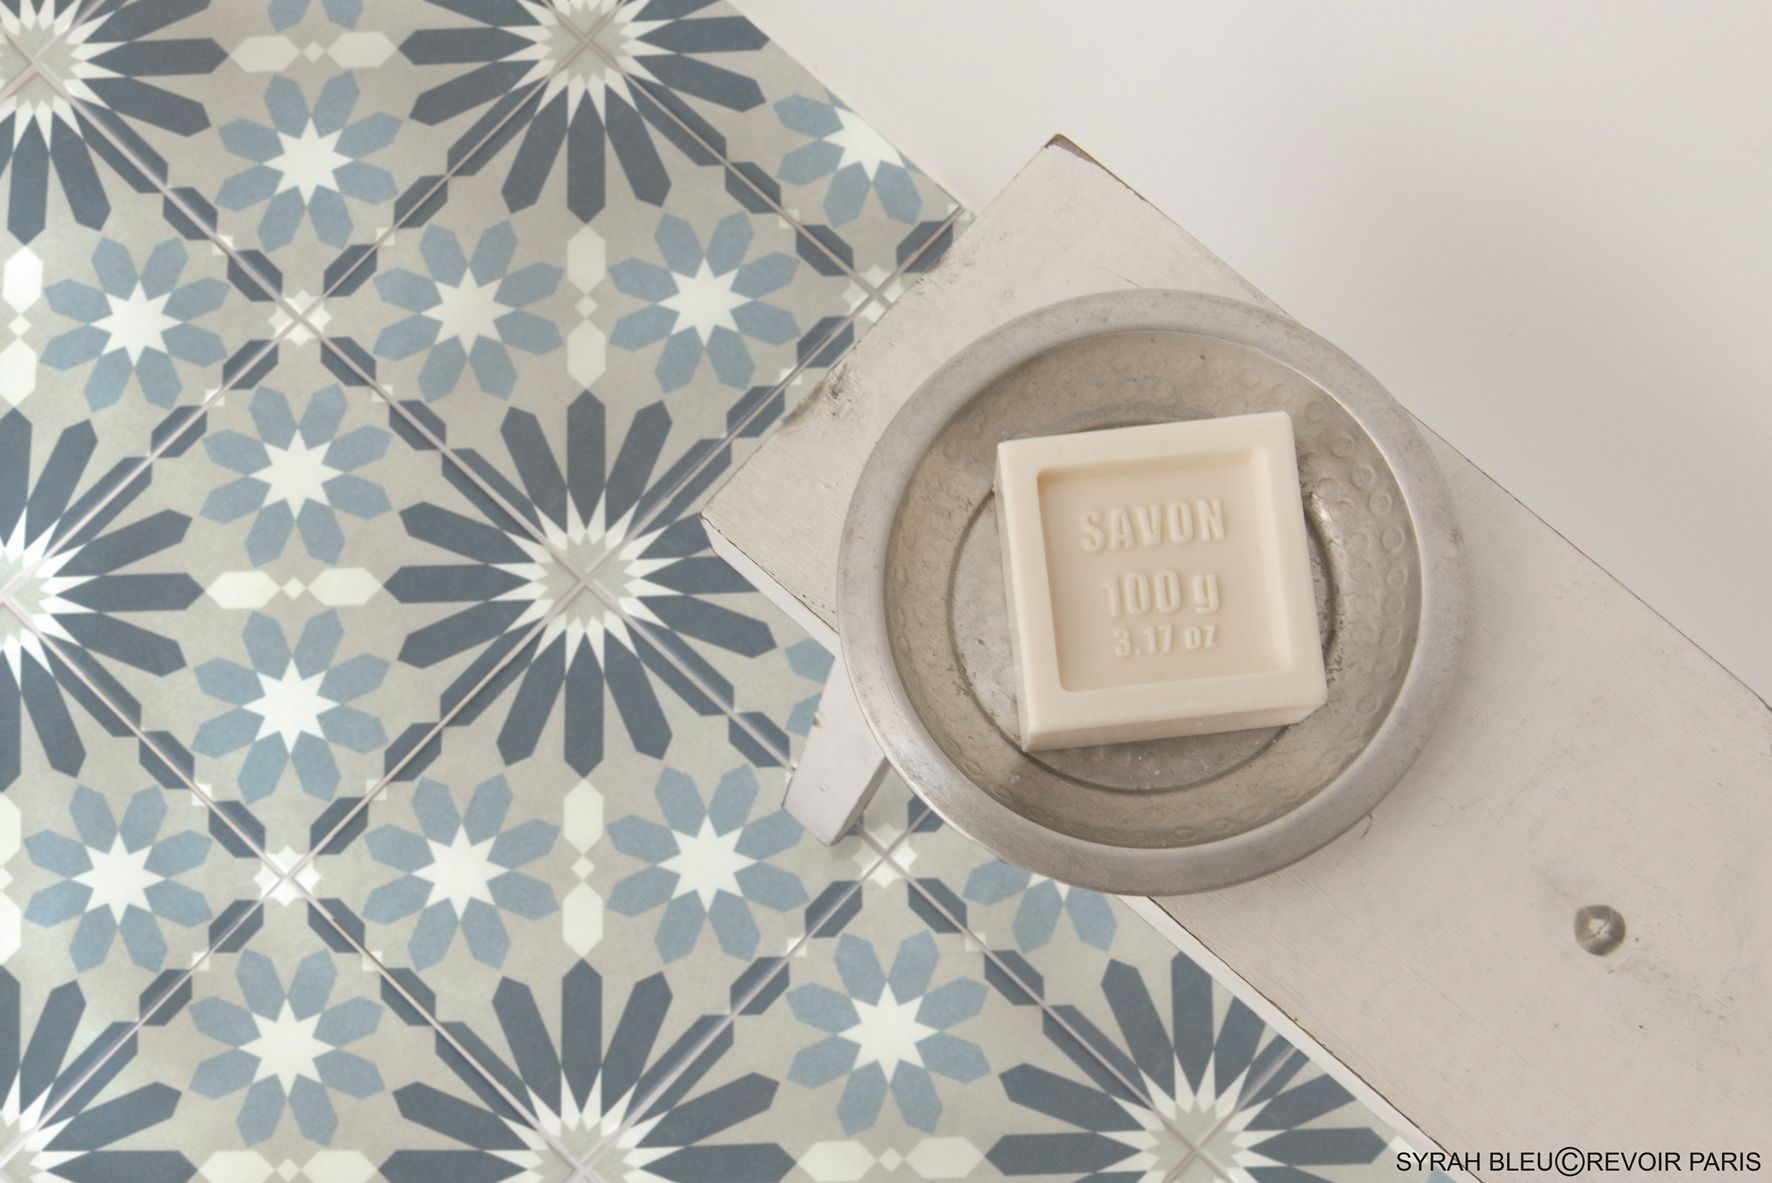 Curiously Patterned Encaustic Tiles Made In Porcelain Perfect For Kitchens